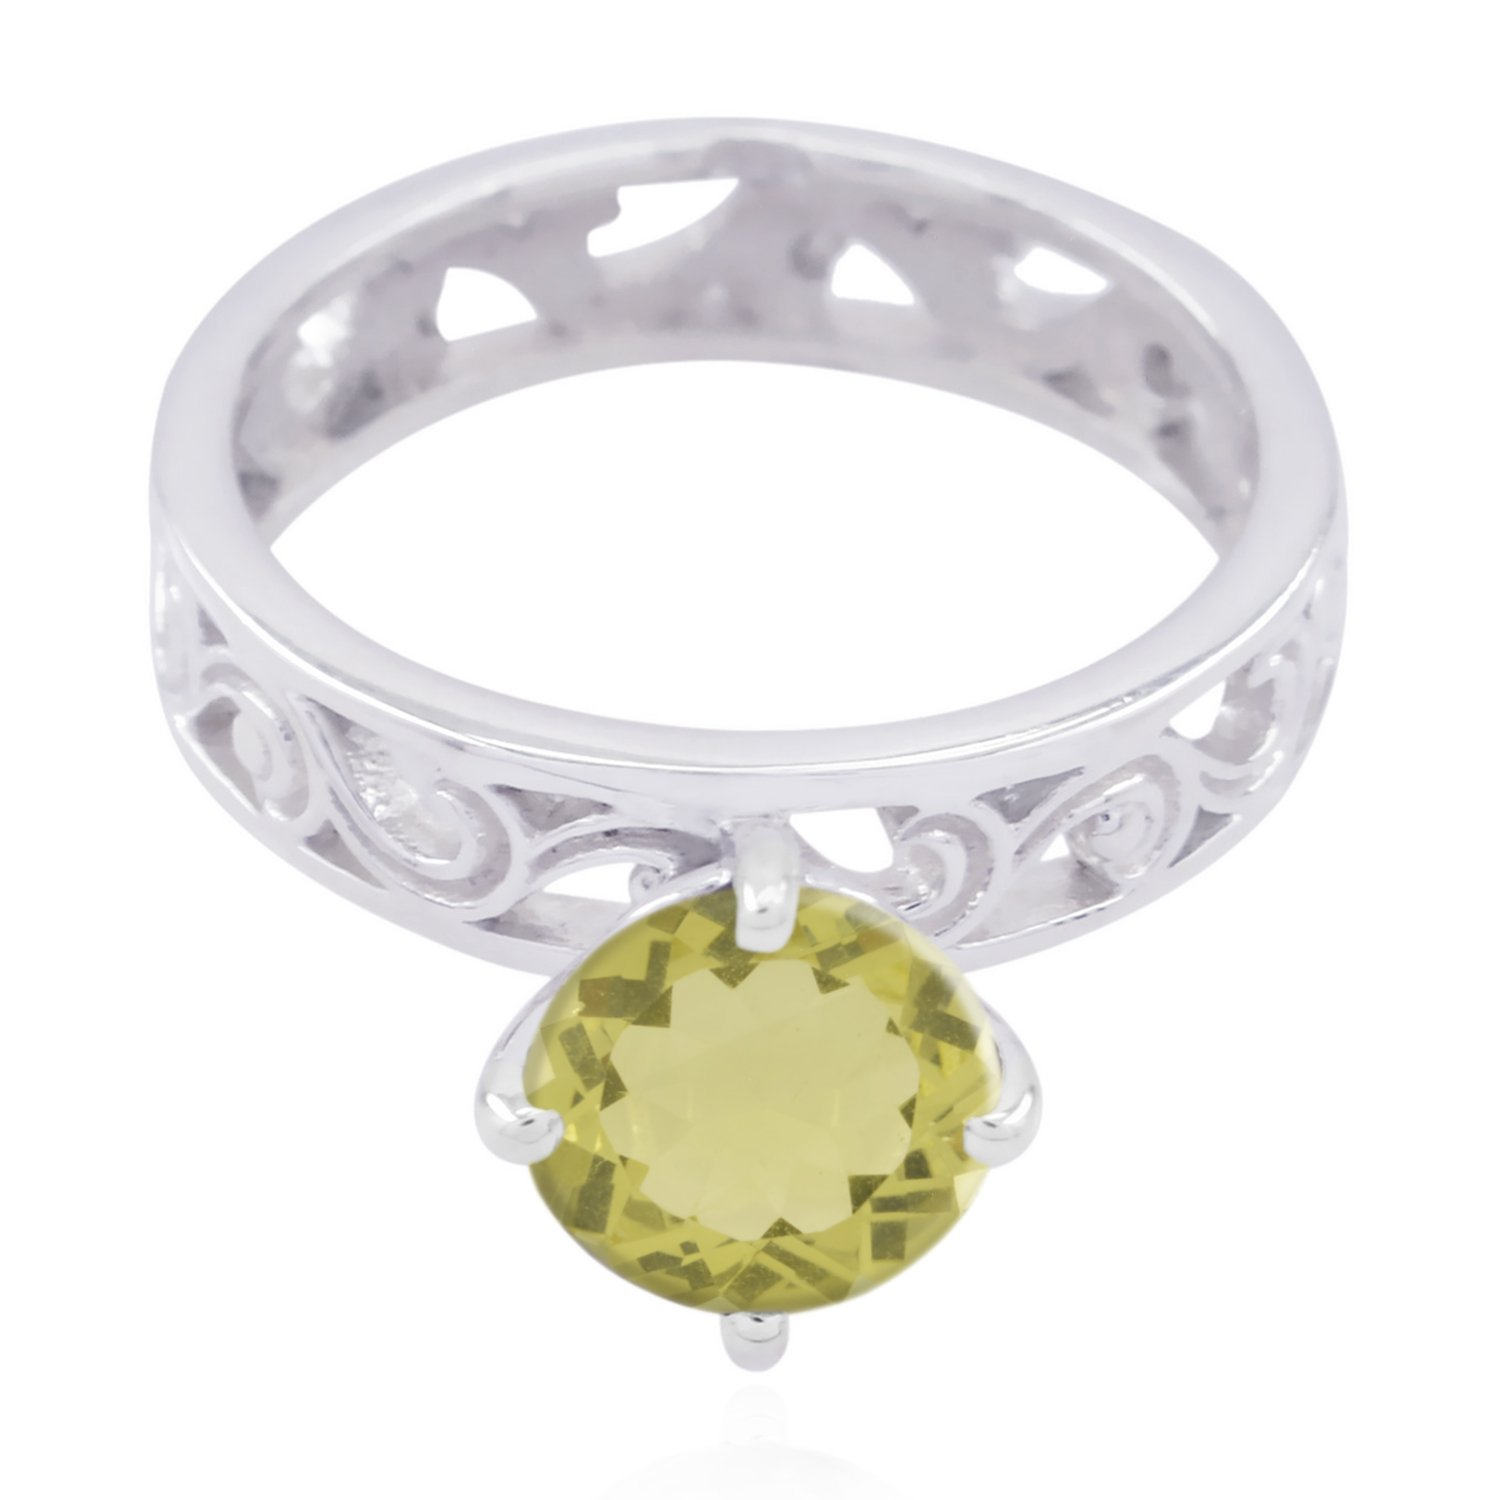 Greatest Jewellery Highest Item Gift for Grandmother top Ring Natural Gemstone Round Faceted Lemon Quartz Rings 925 Sterling Silver Yellow Lemon Quartz Natural Gemstone Ring